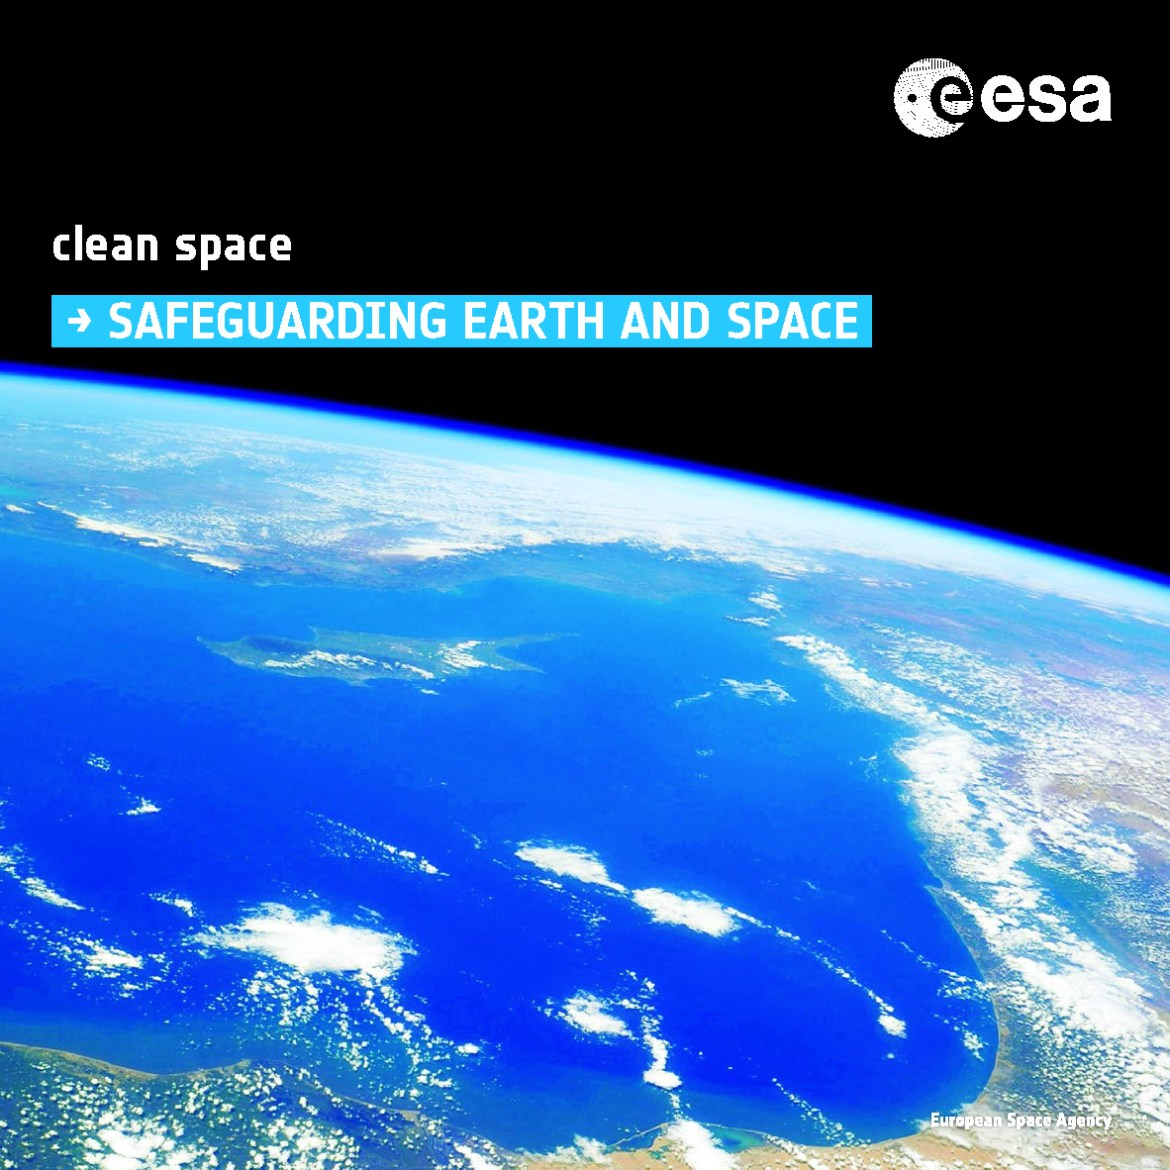 cleanspace brochures / esa